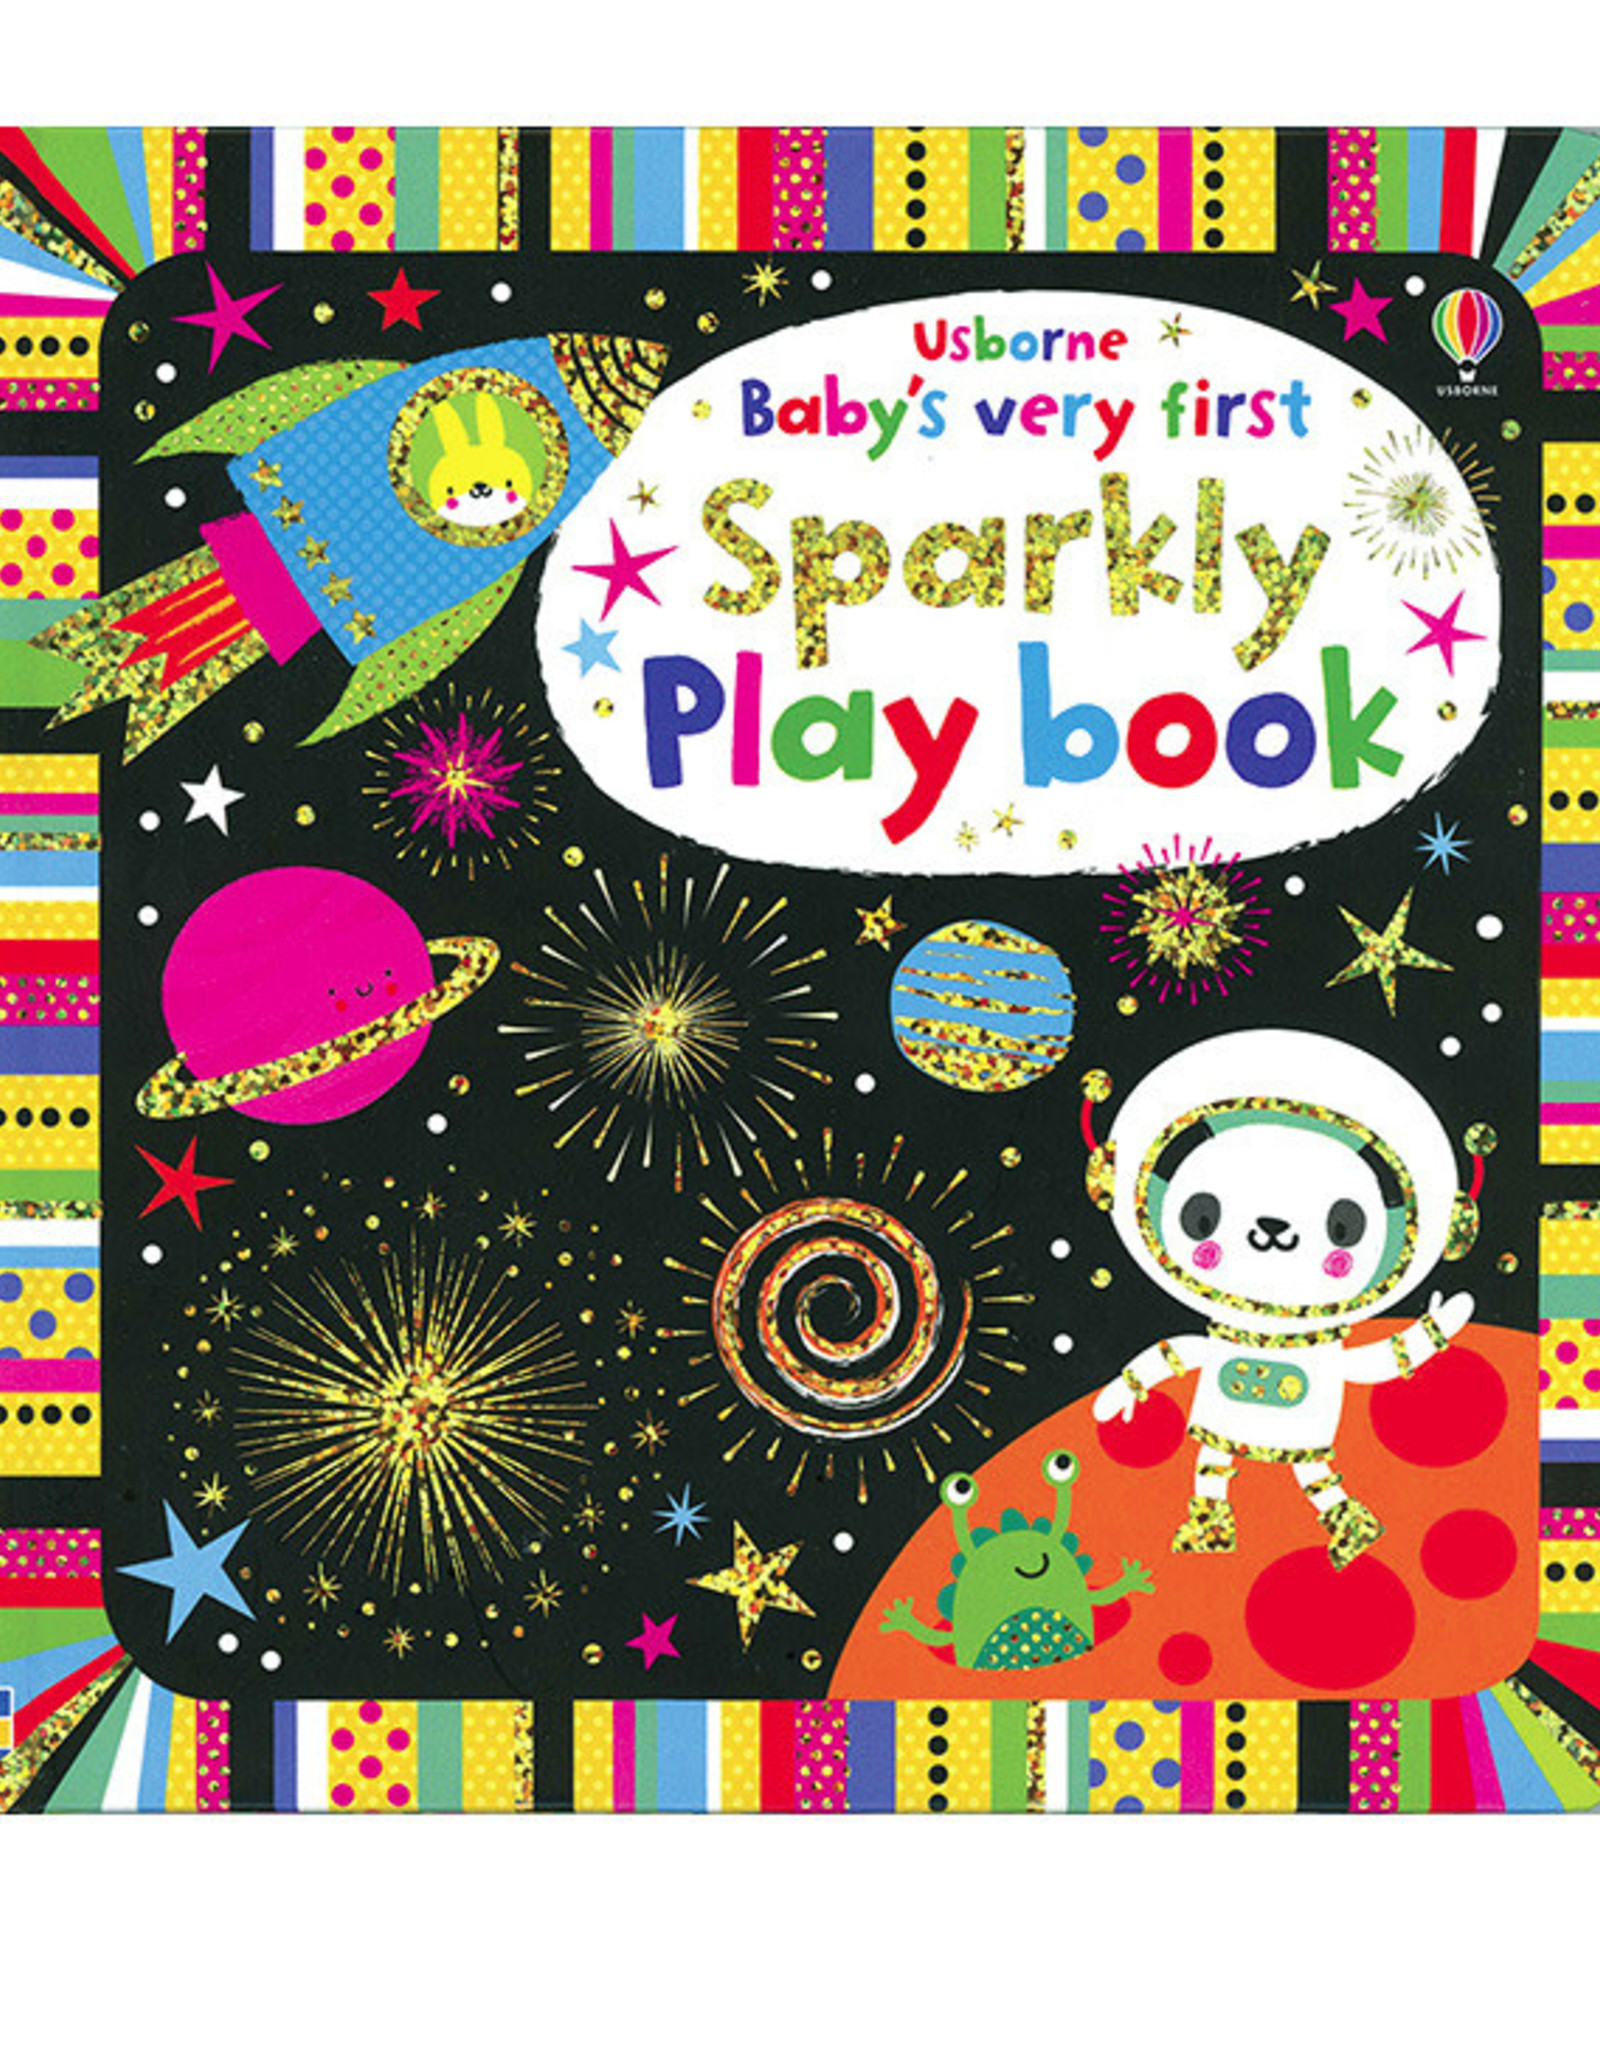 Usborne Baby's Very First Sparkly Playbook